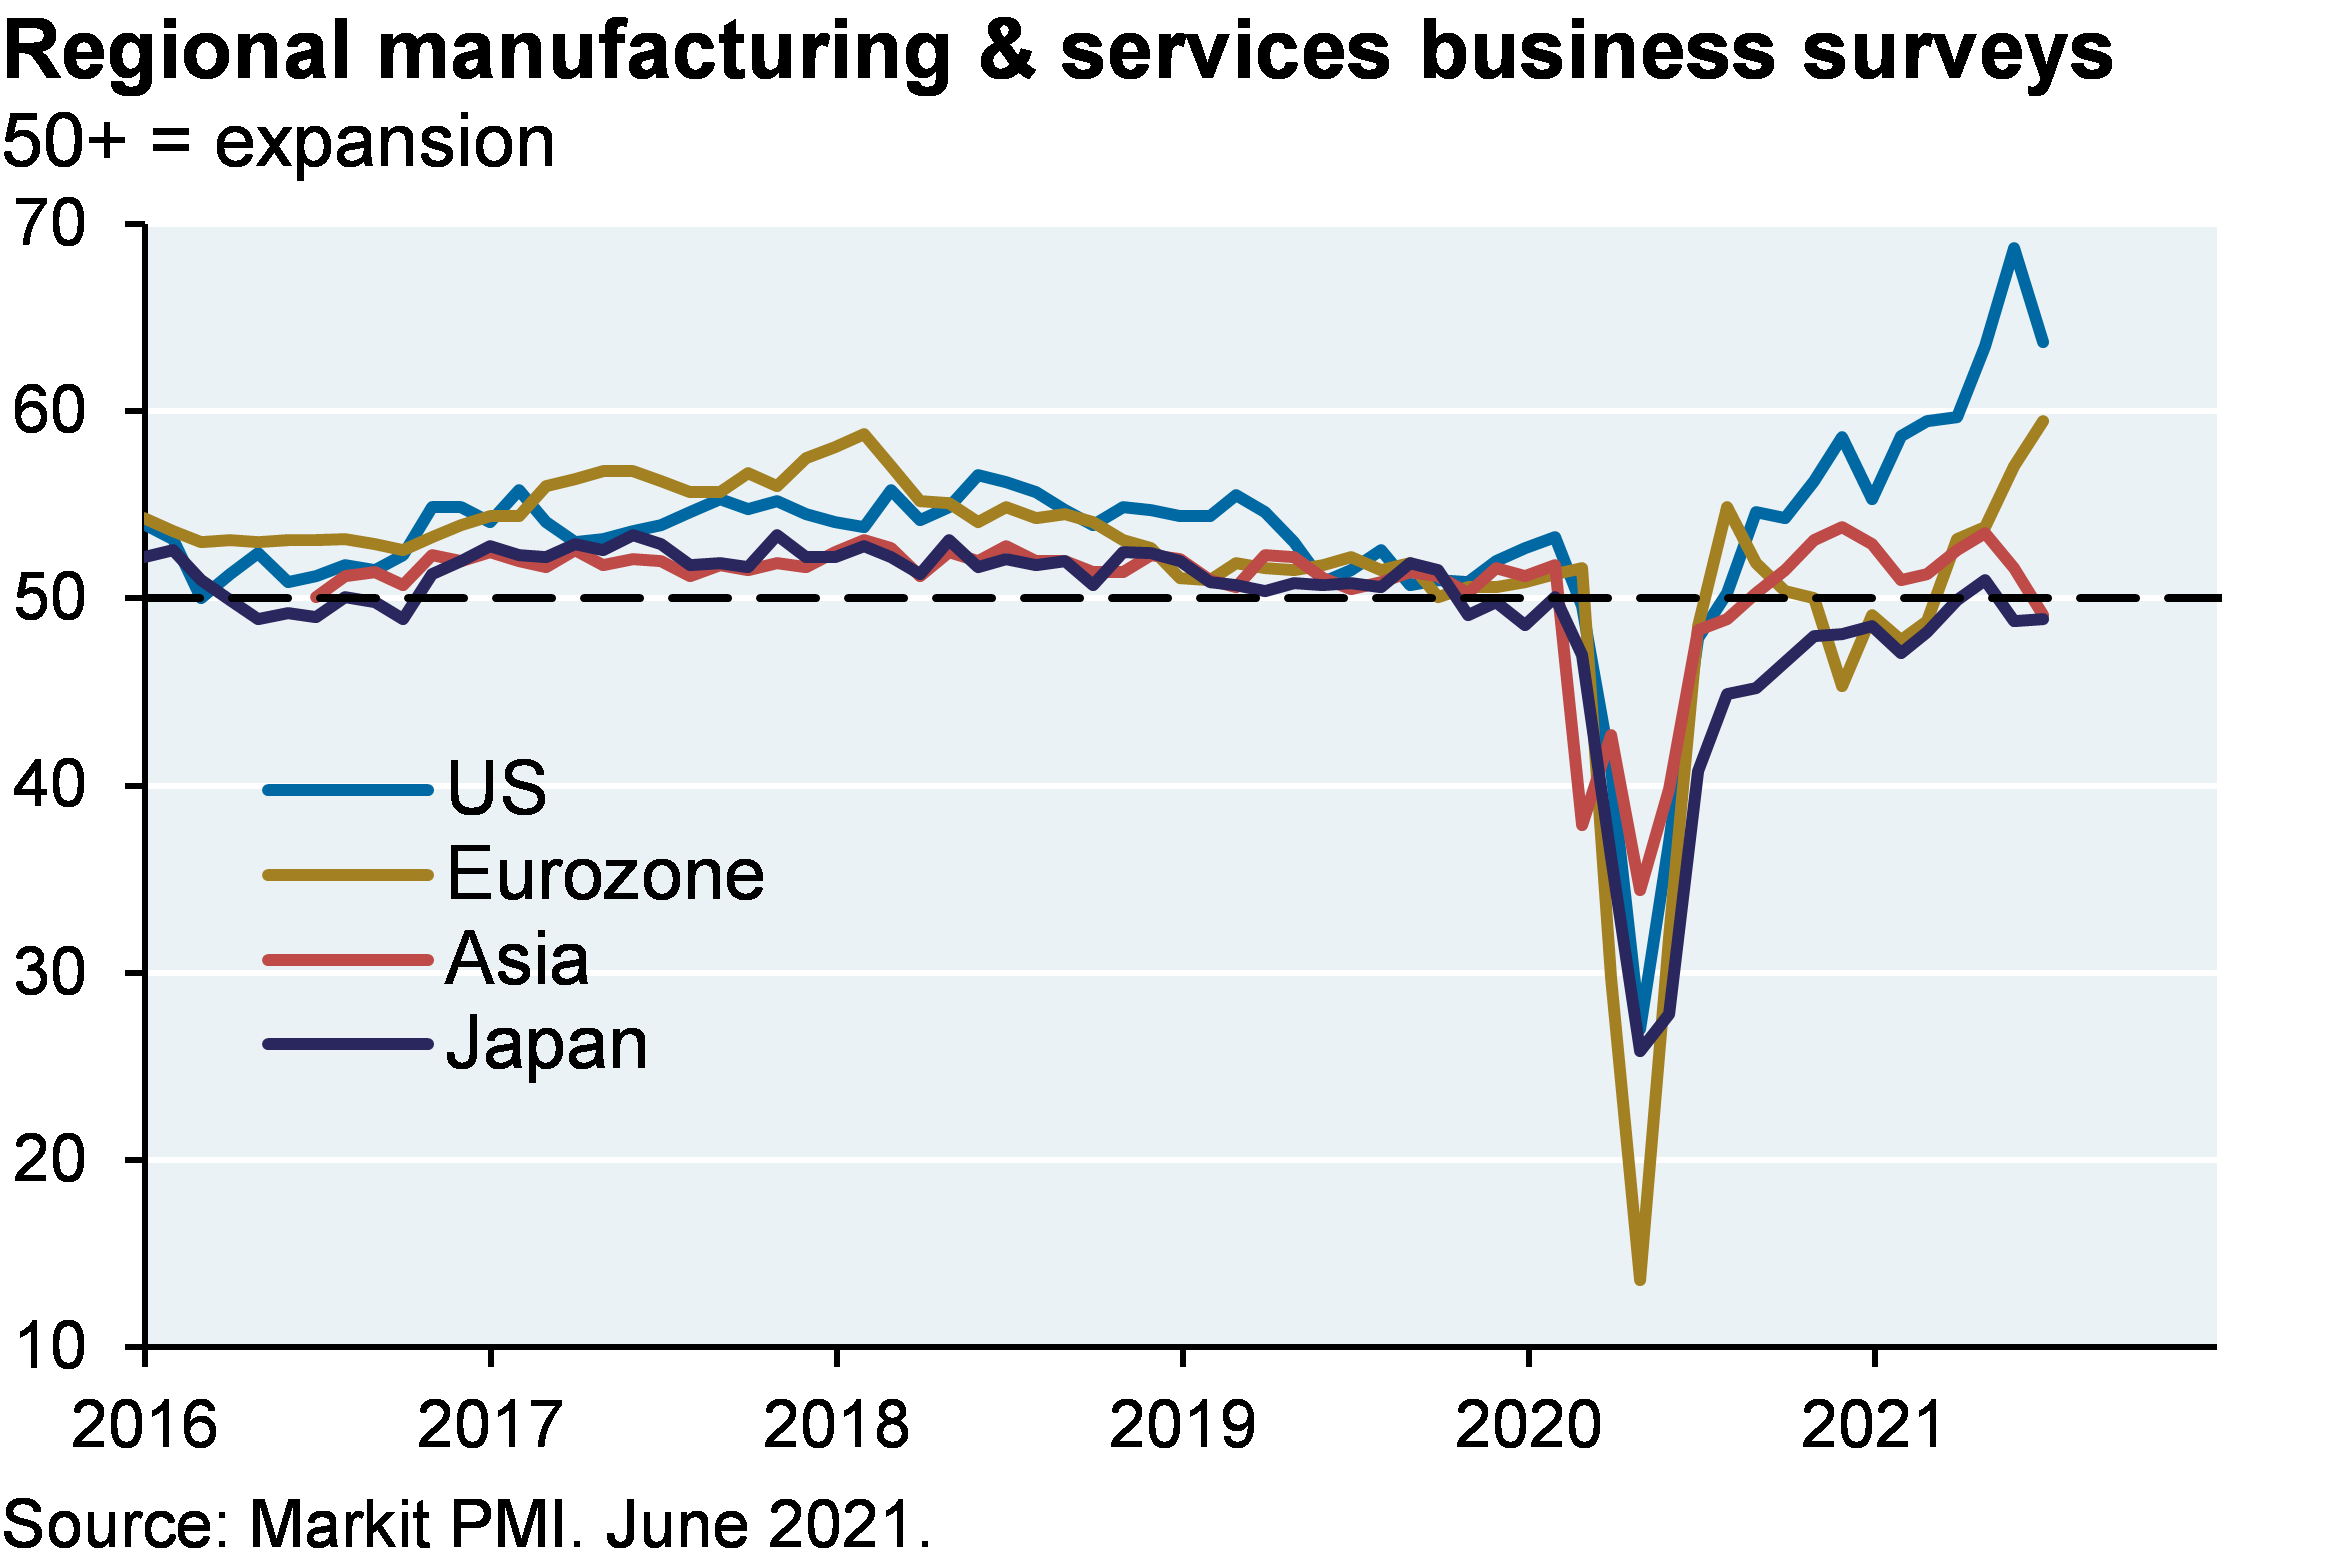 Line chart shows regional manufacturing & services business surveys since 2016, where a value of greater than 50 indicates expansion. Most recently, the US is around 65, the highest level on record for the period shown. Eurozone is most recently at around 60, and Asia and Japan are at around 50.